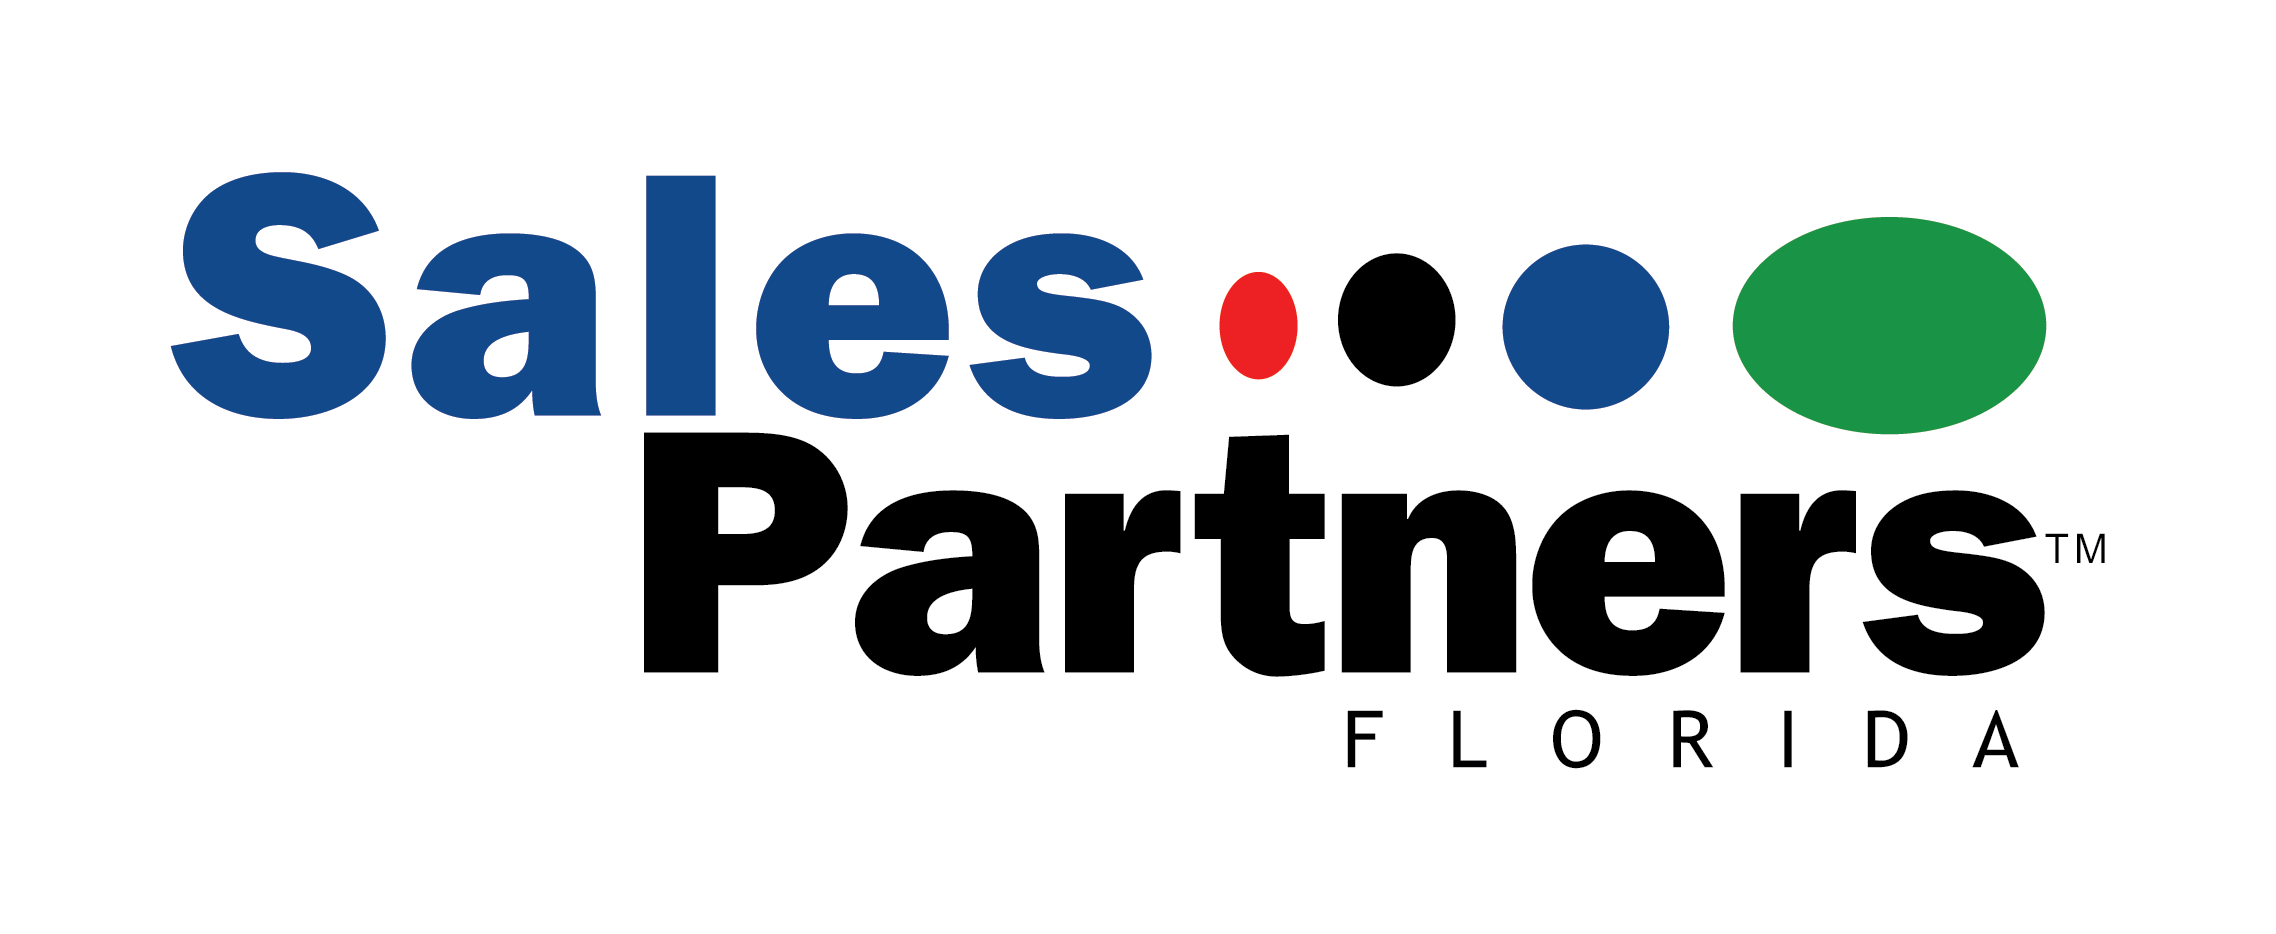 Sales Partners Florida